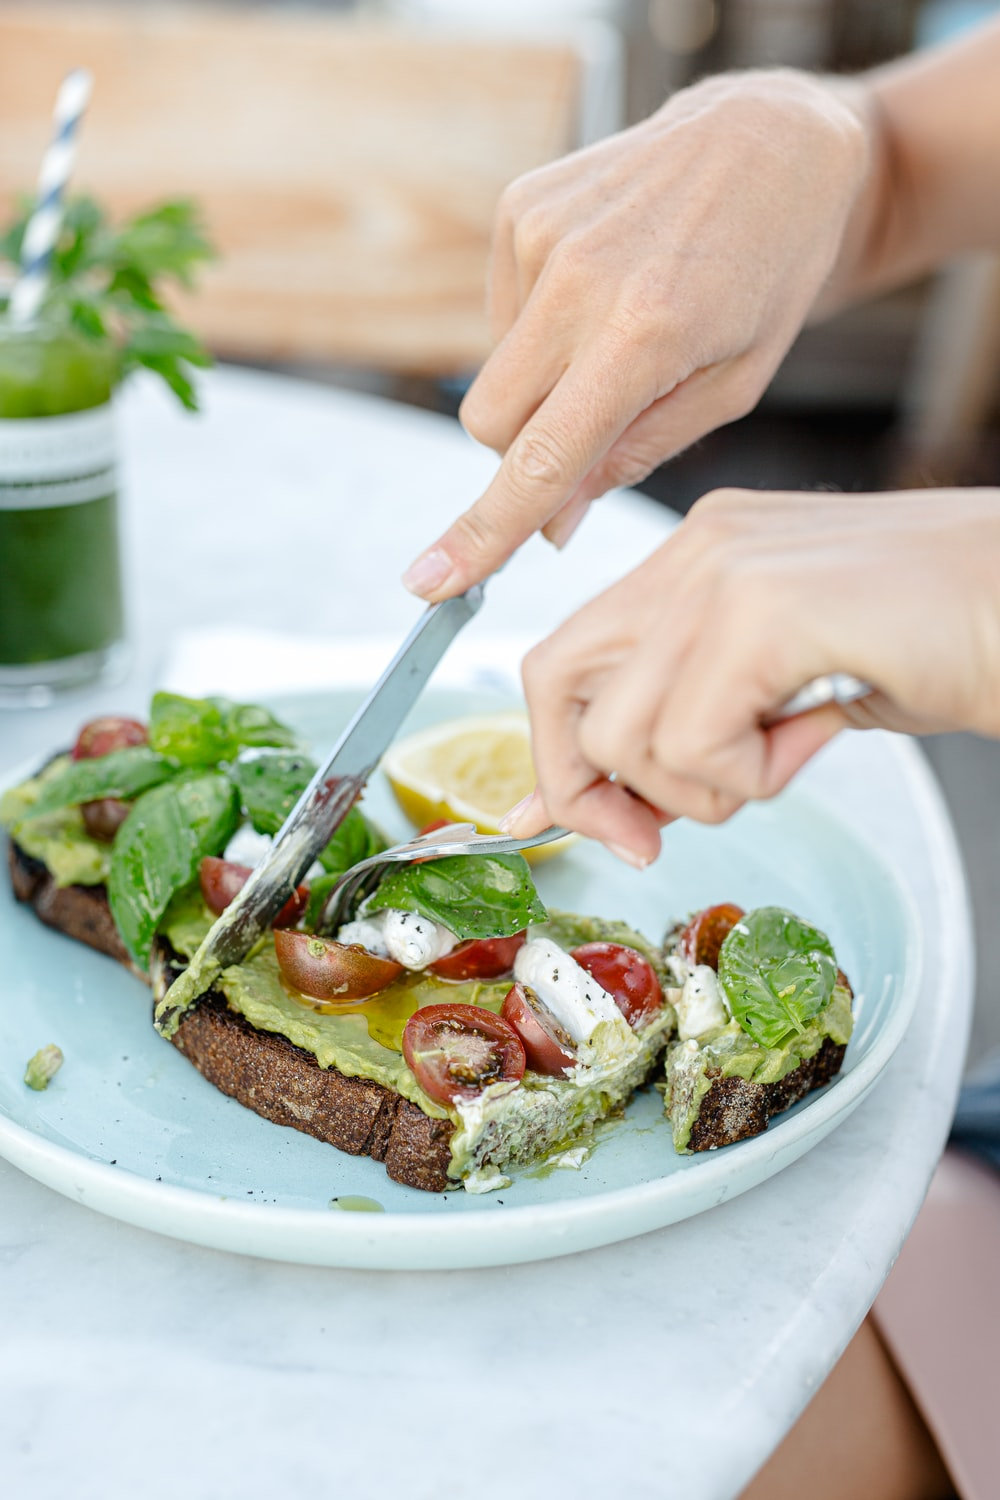 person holding knife slicing bread with vegetable on white ceramic plate